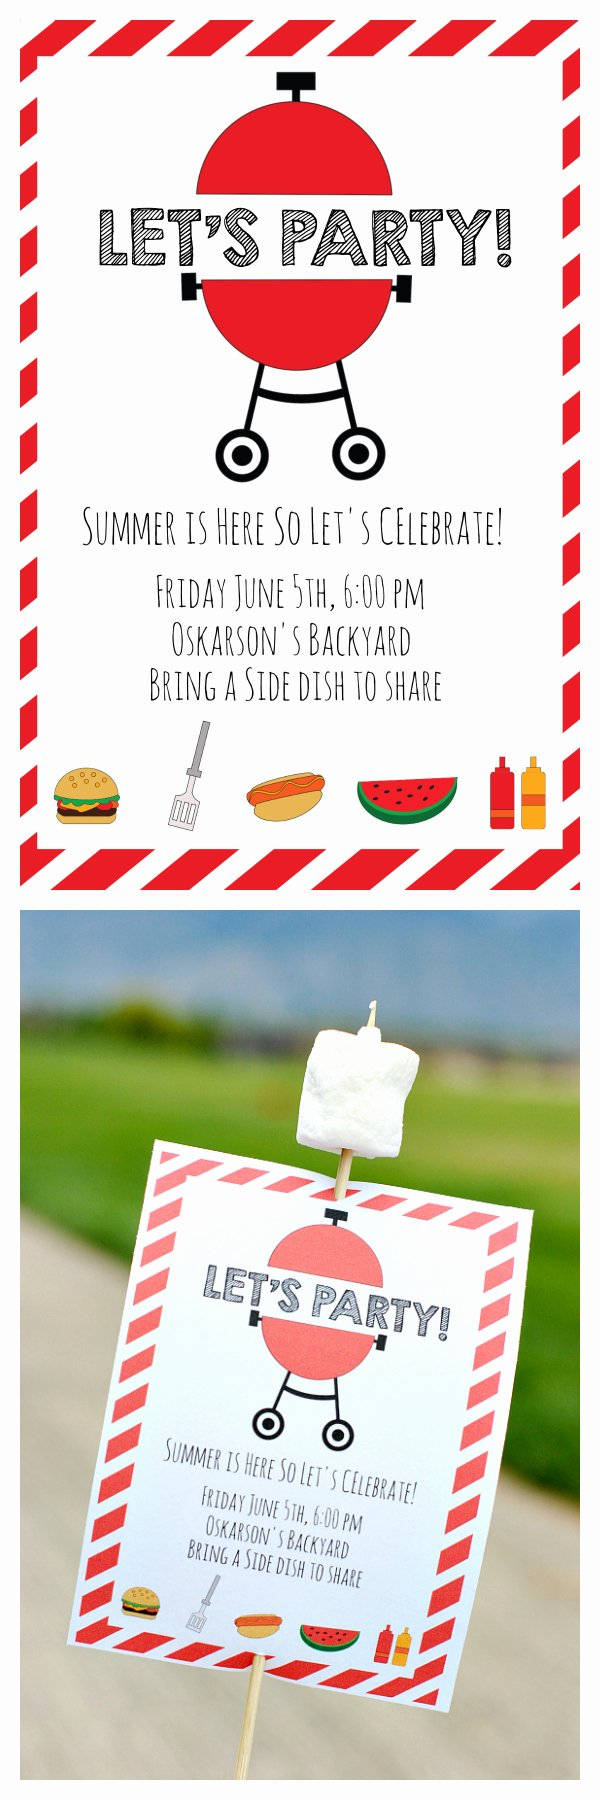 Bbq Party Invitation Wording Lovely Summer Bbq Invitations and Ideas